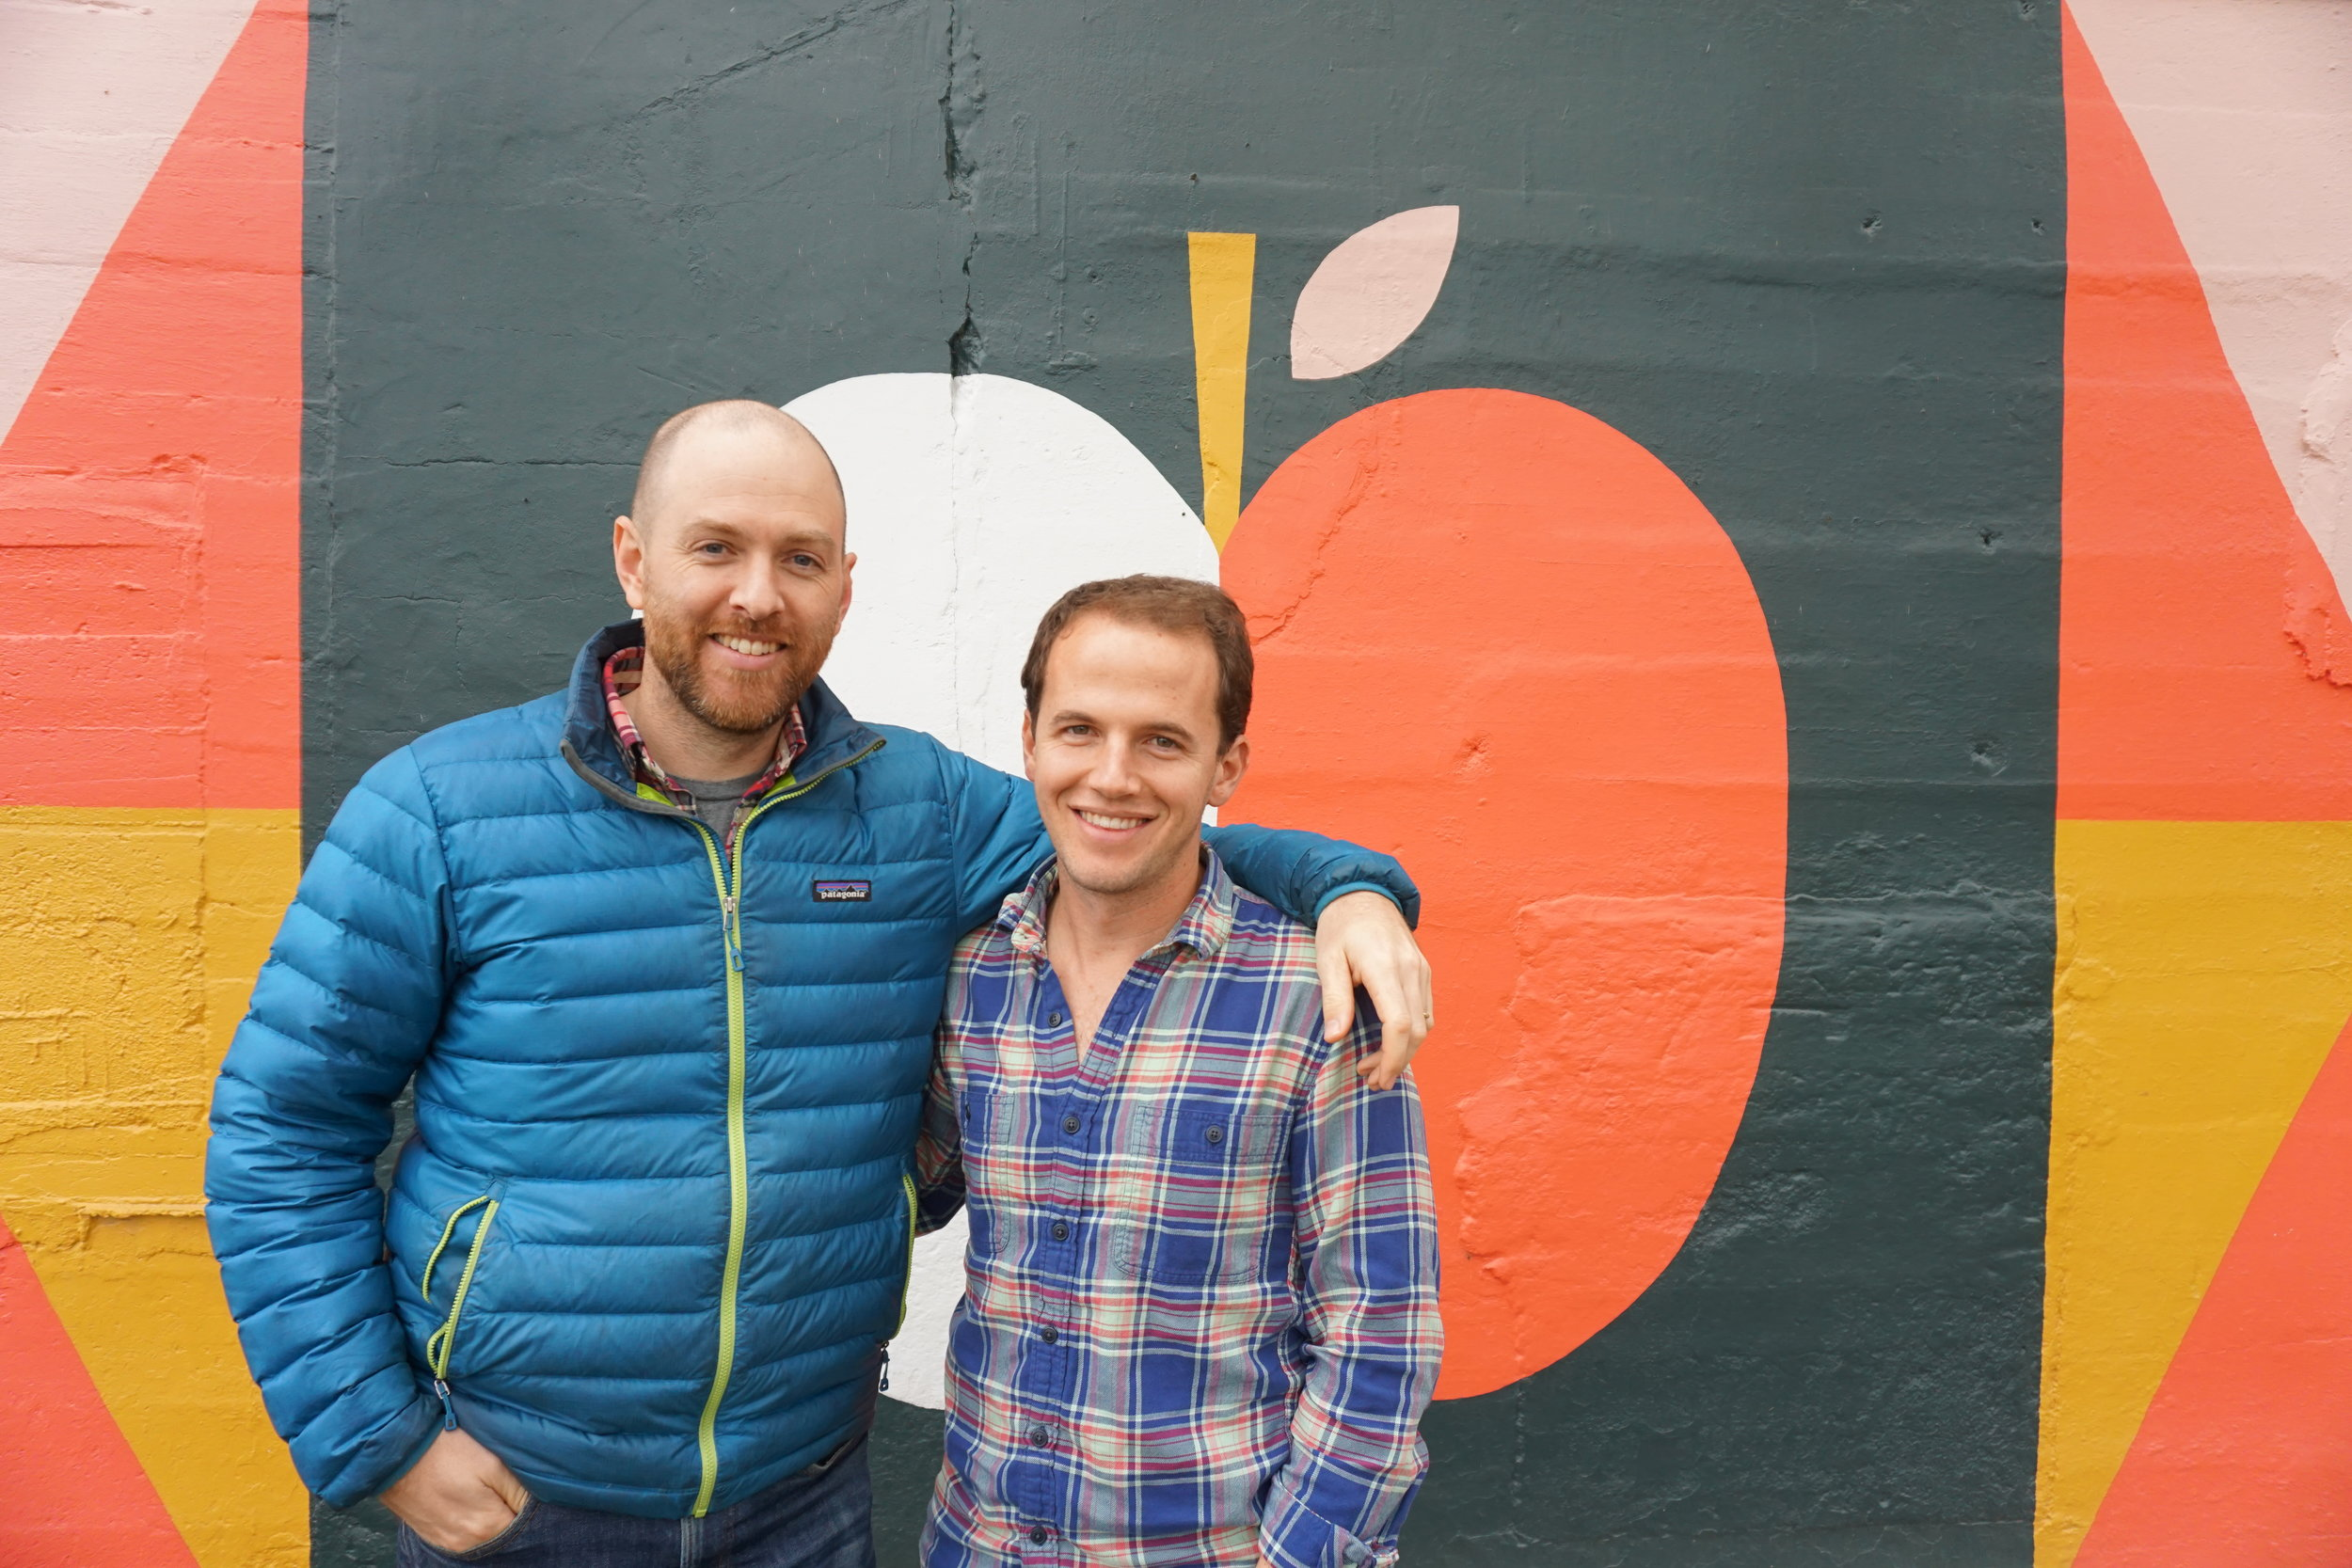 Co-Founders of Shacksbury Cider Colin Davis (left) and David Dolginow (right)